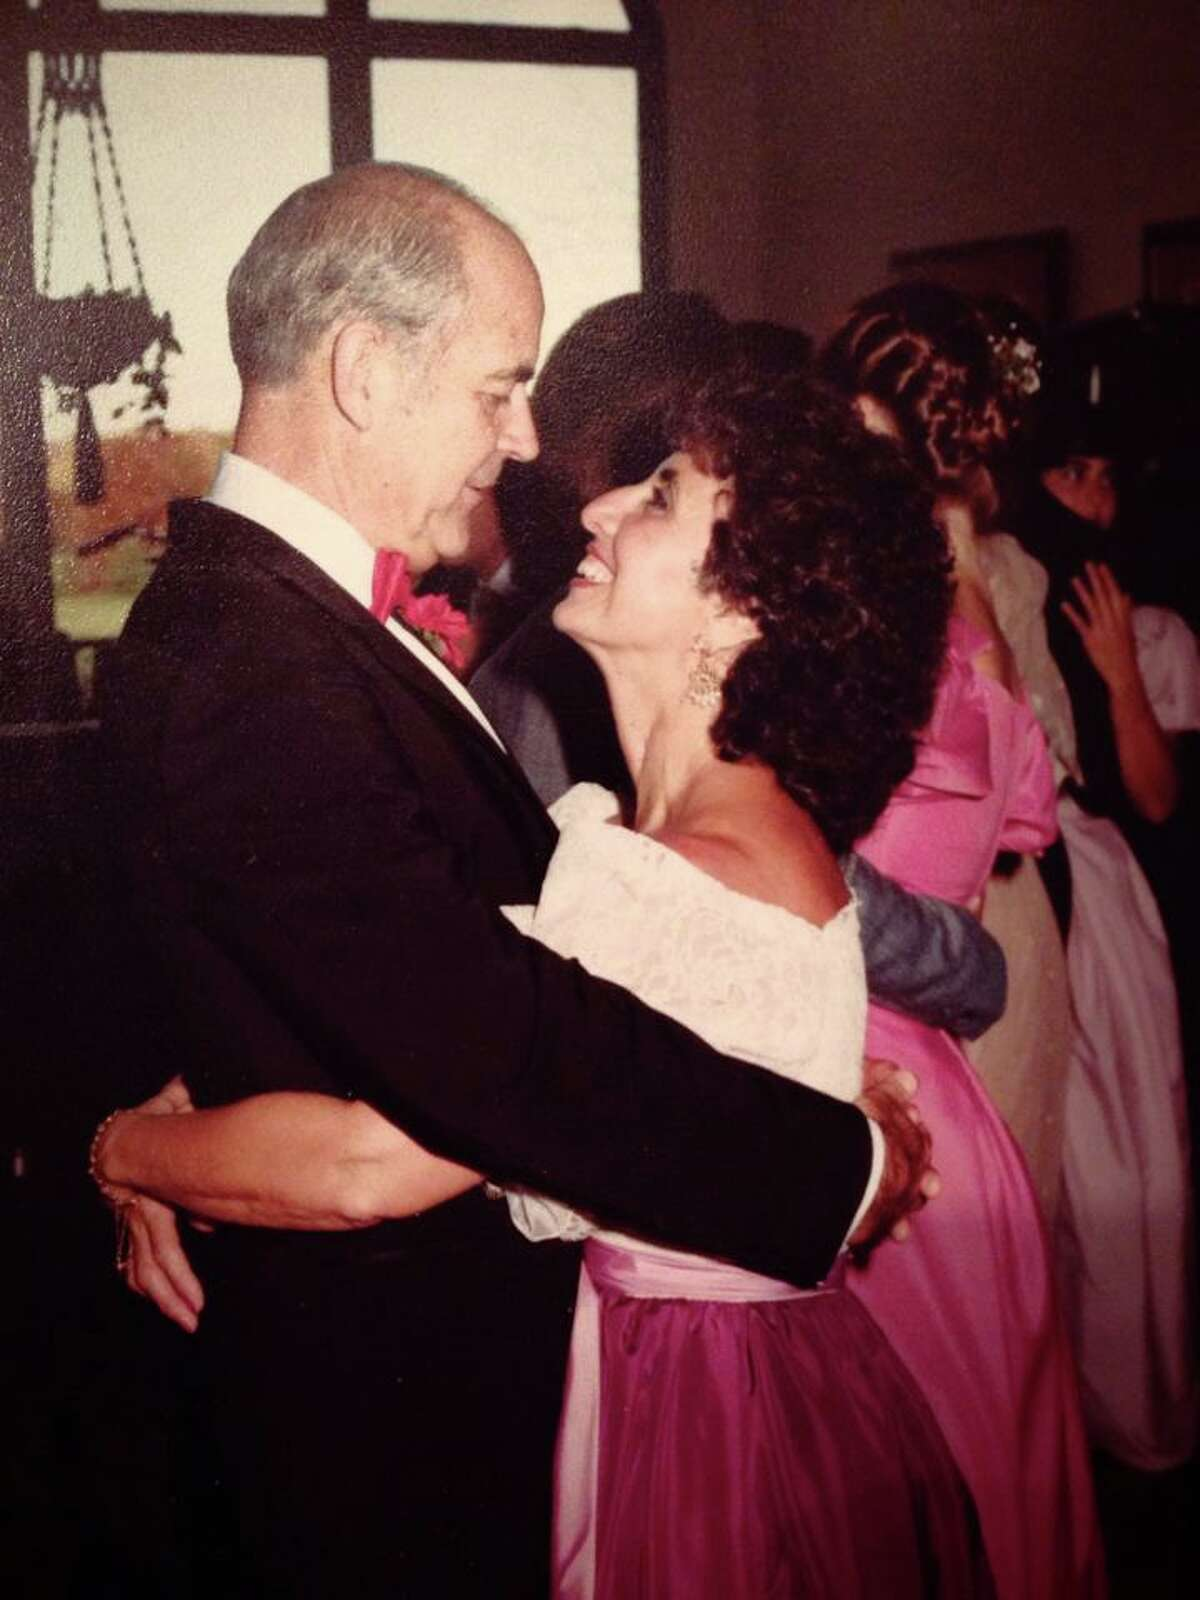 1. I was born in Cincinnati, Ohio to parents who were deeply in love. Their loving, funny, intense and beautiful relationship set a standard for what would take me 38 years to find.